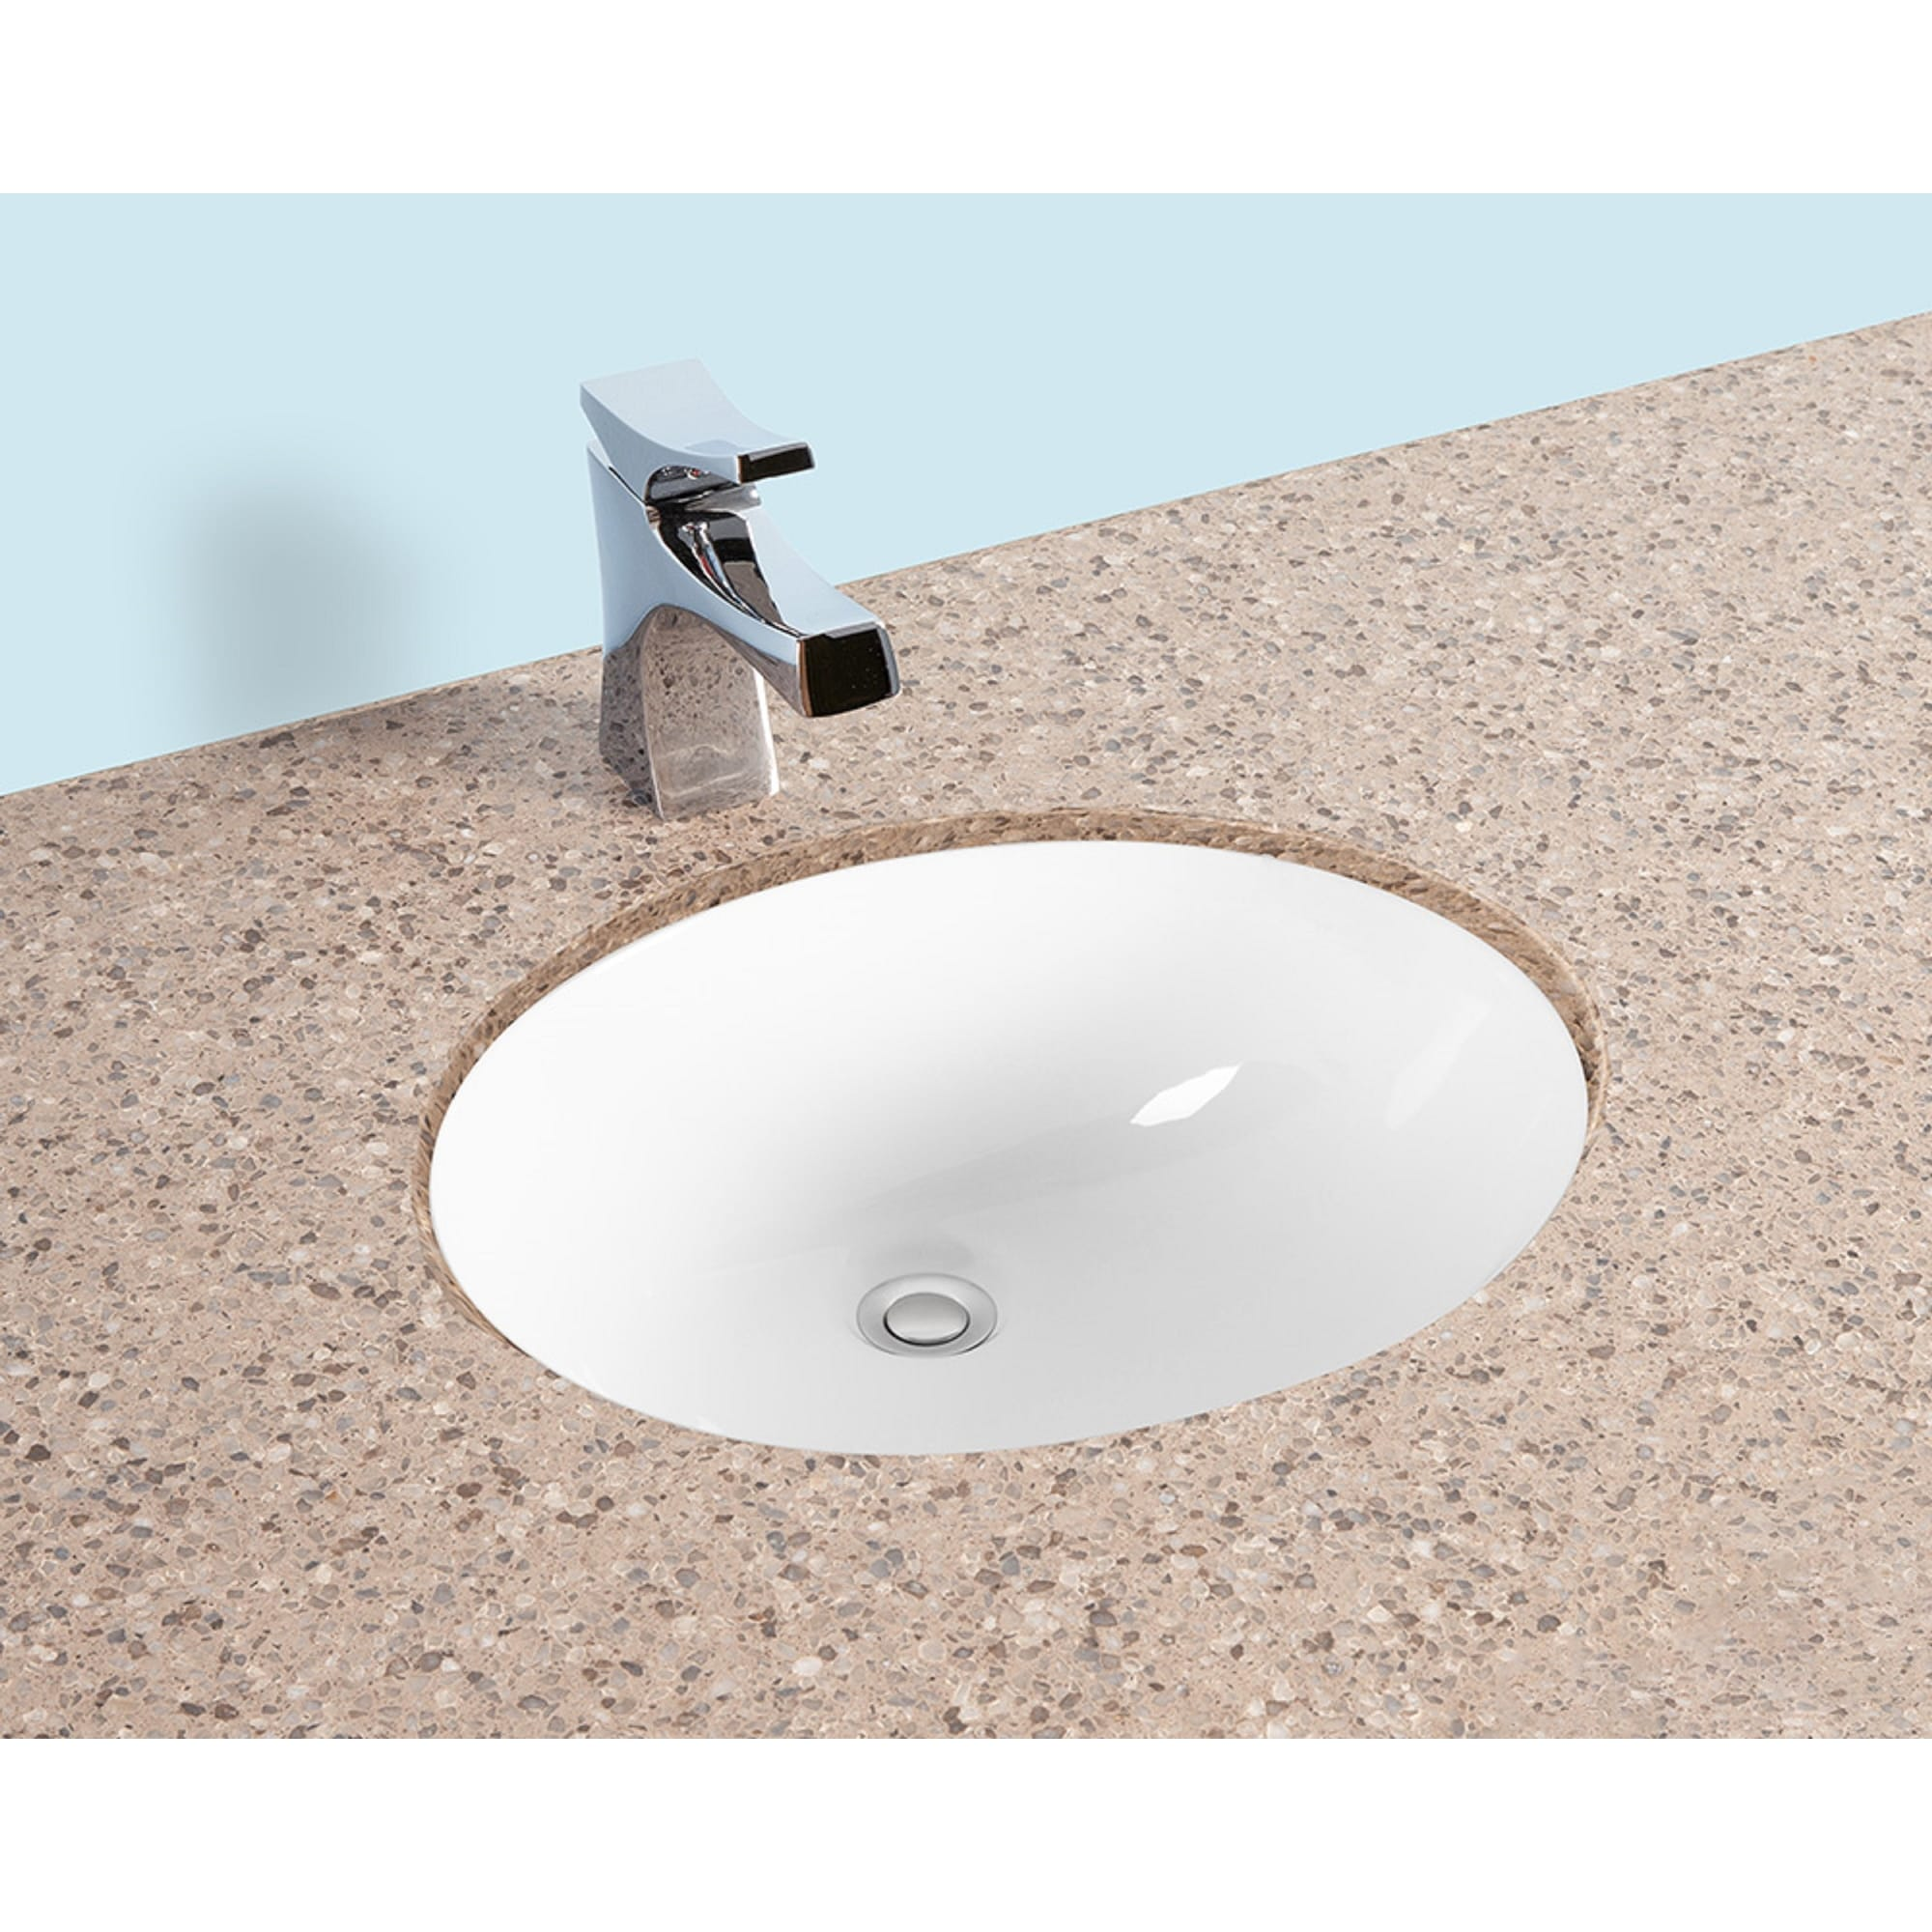 Romano 1916 19x16 Oval Undermount Bathroom Sink W Concealed Overflow Hole Modern Porcelain Ceramic Lavatory White Overstock 32027123